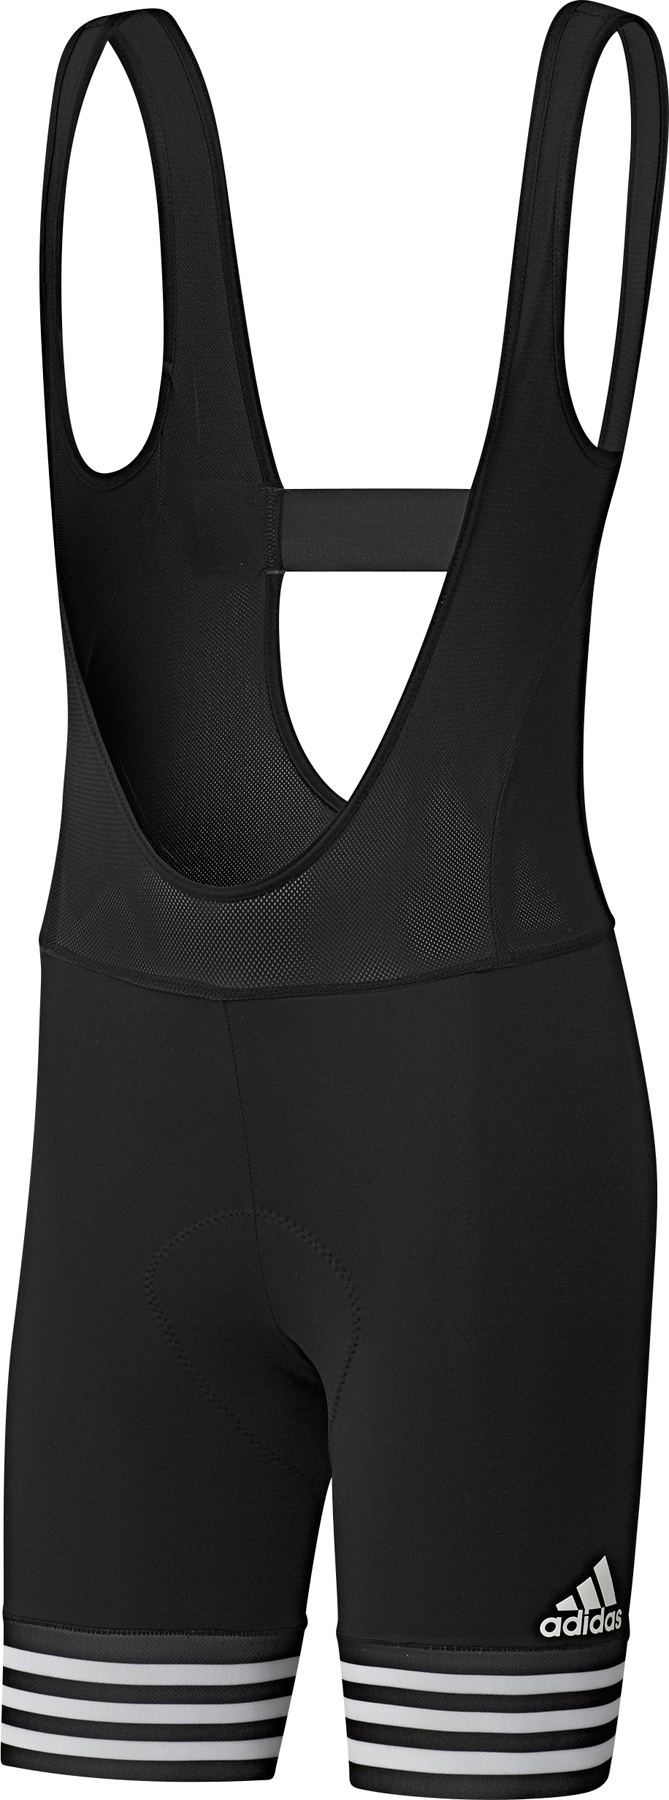 Cuissards courts à bretelles | adidas Cycling | Women's